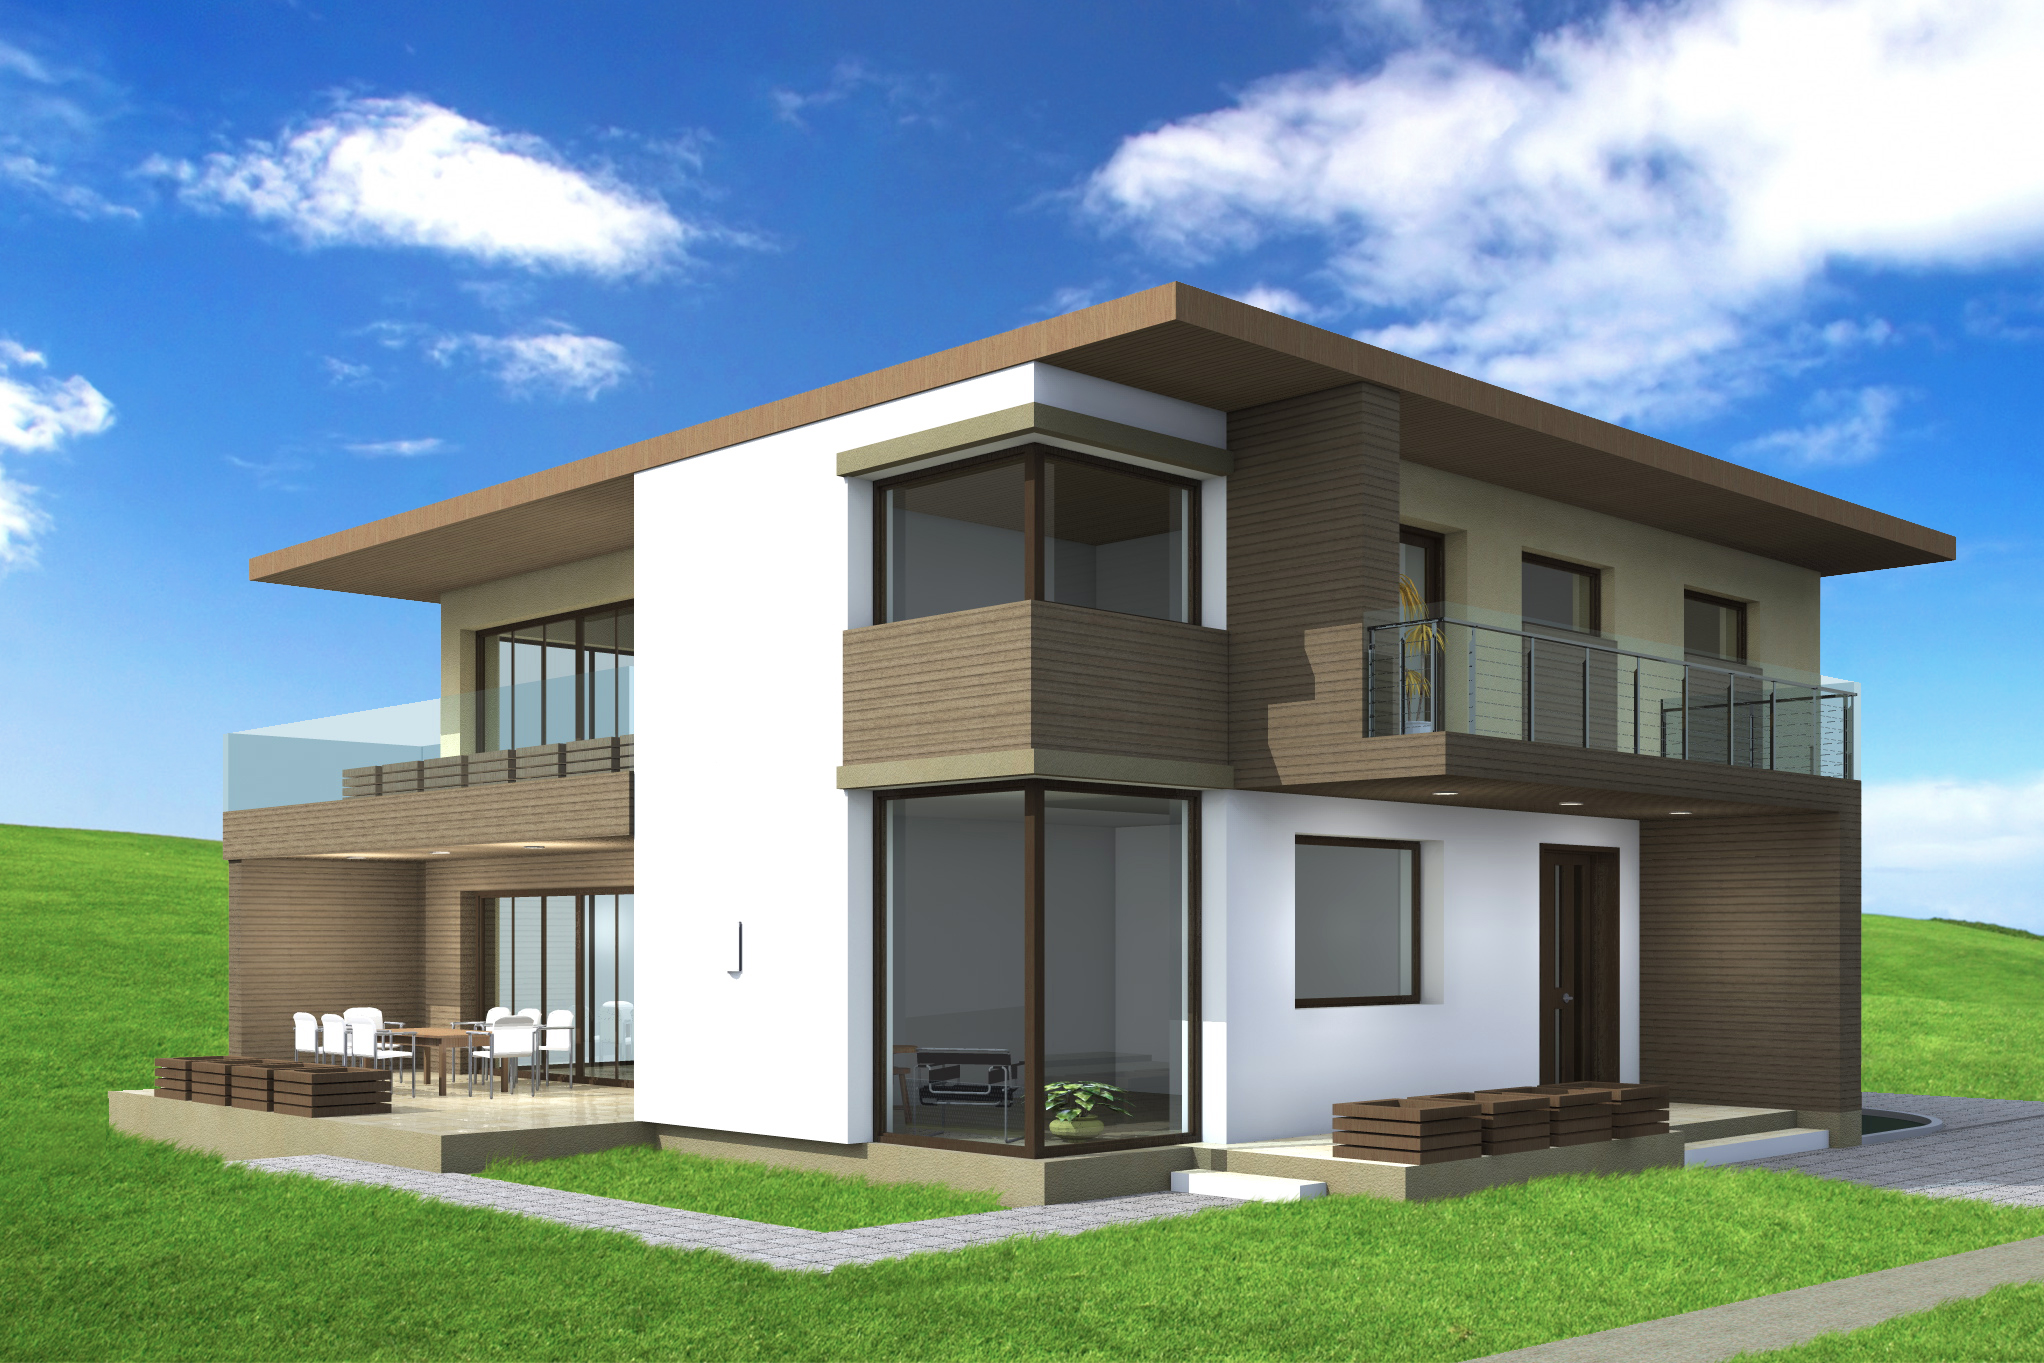 Plan maison contemporaine cj 5 190m2 for Maison etage moderne